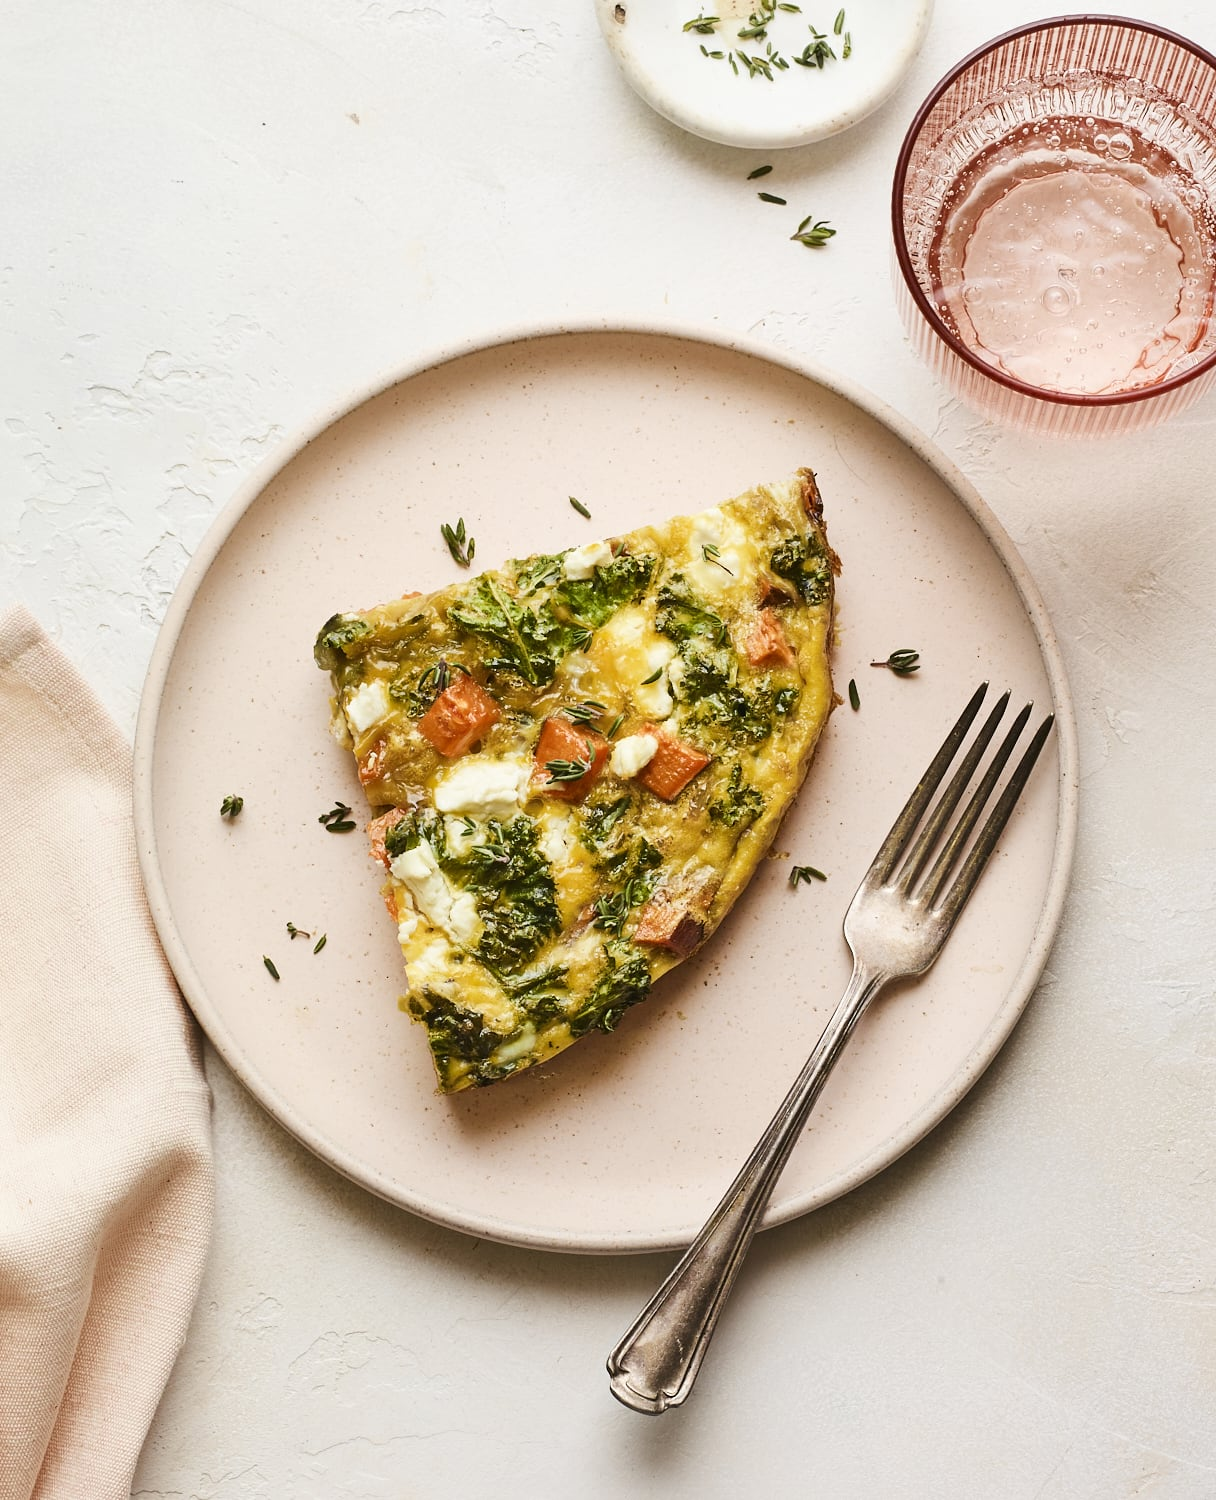 Slice of sweet potato kale frittata on a plate with a fork.